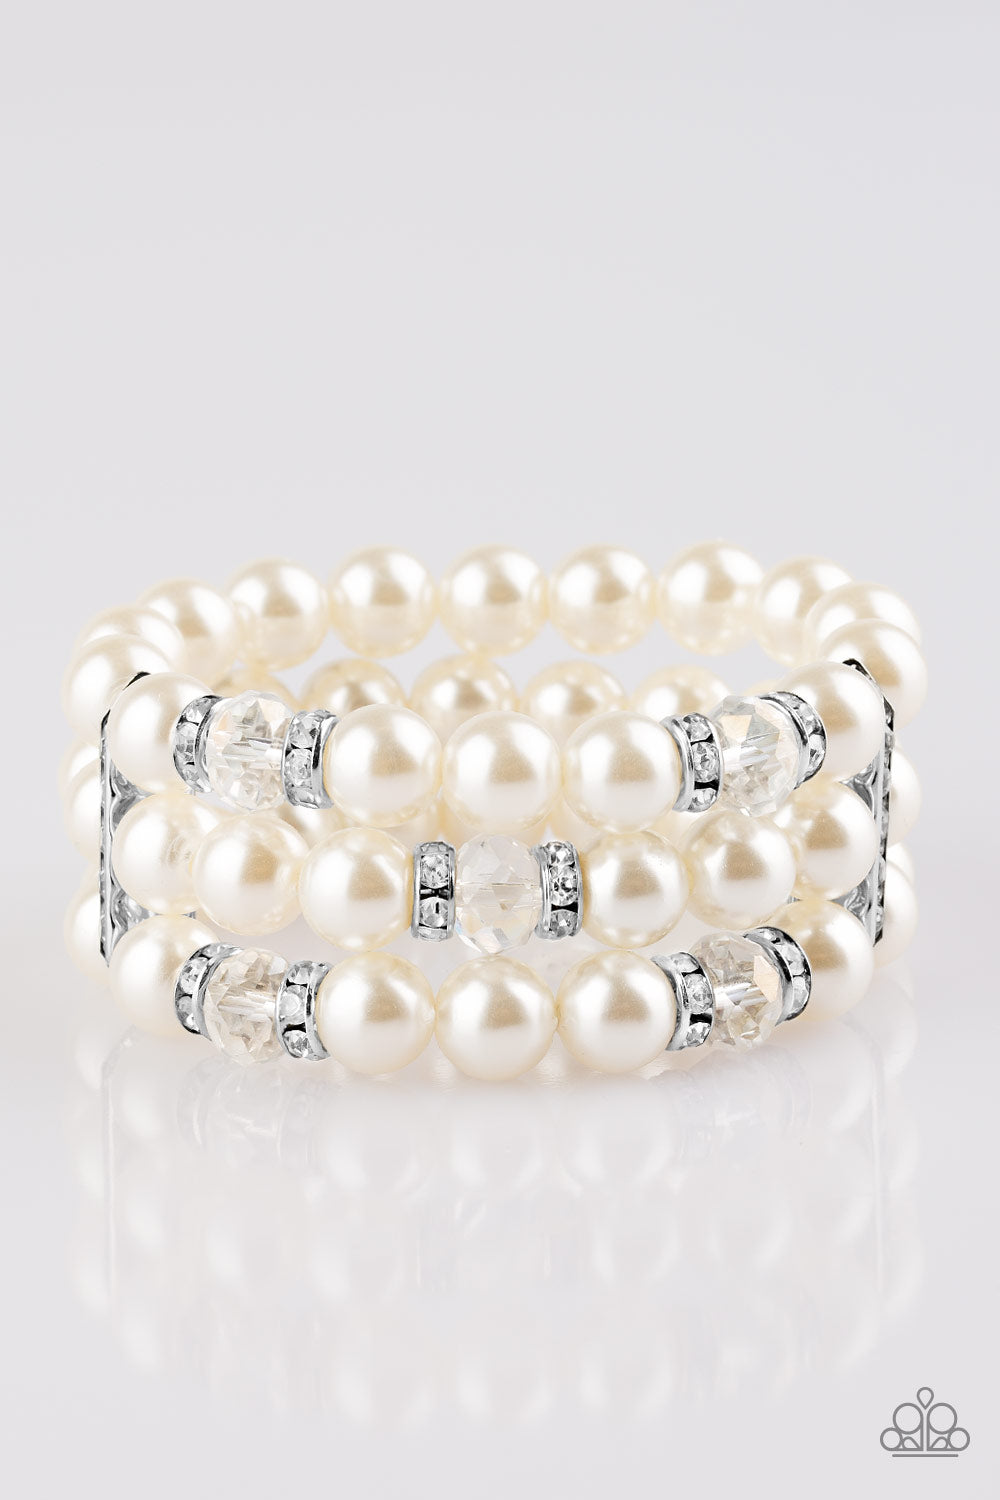 676e954f6ca17 Undeniably Dapper - White Pearl Bracelet - Life of the Party Exclusive  December 2018